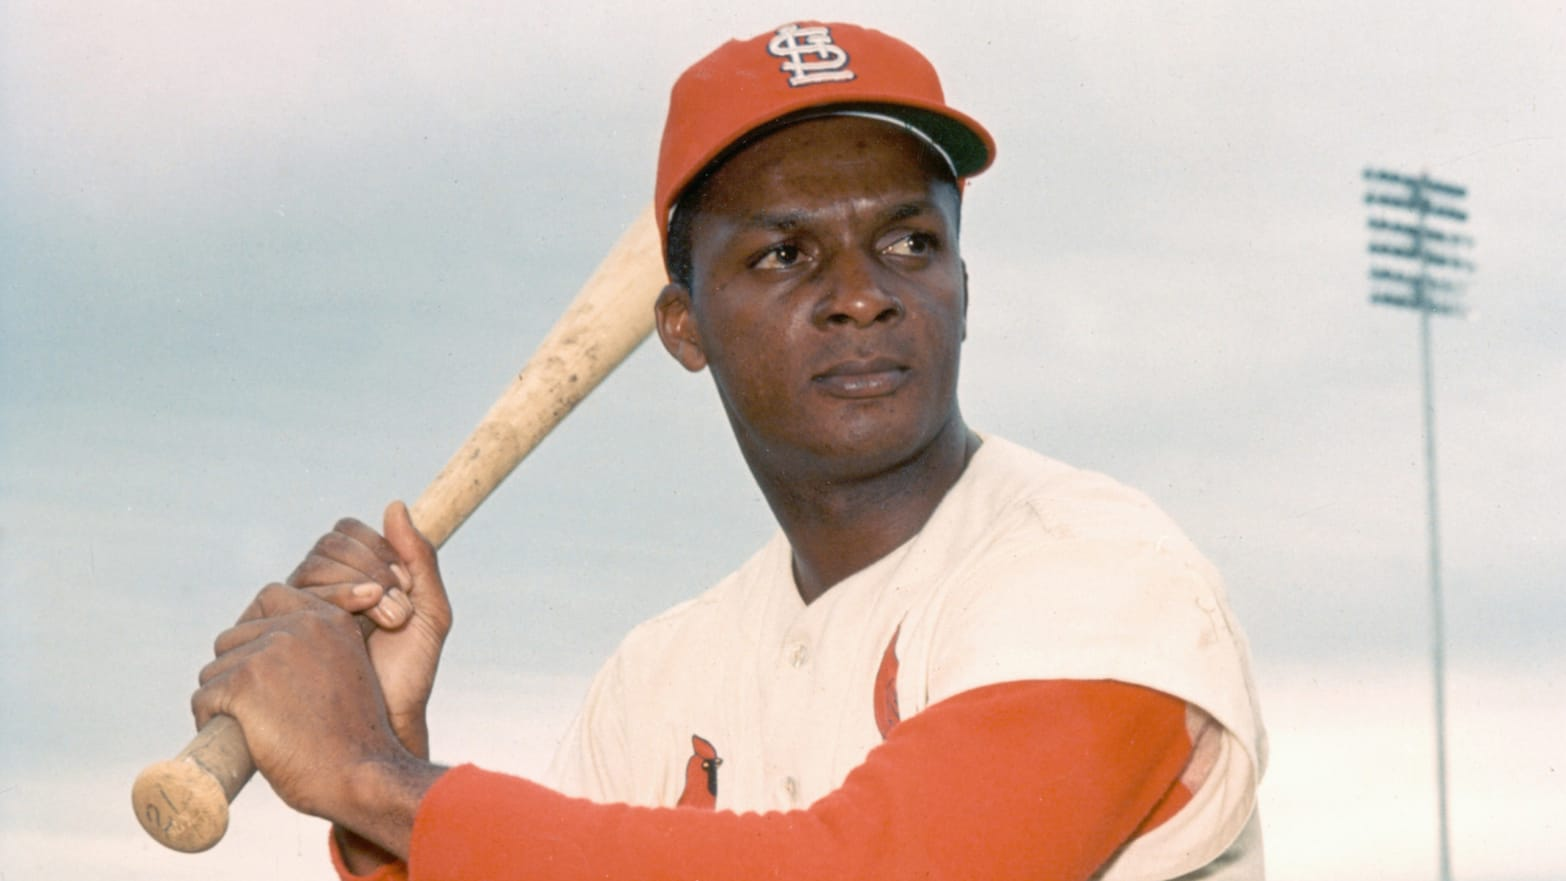 The Christmas Eve When Curt Flood Changed Baseball Forever